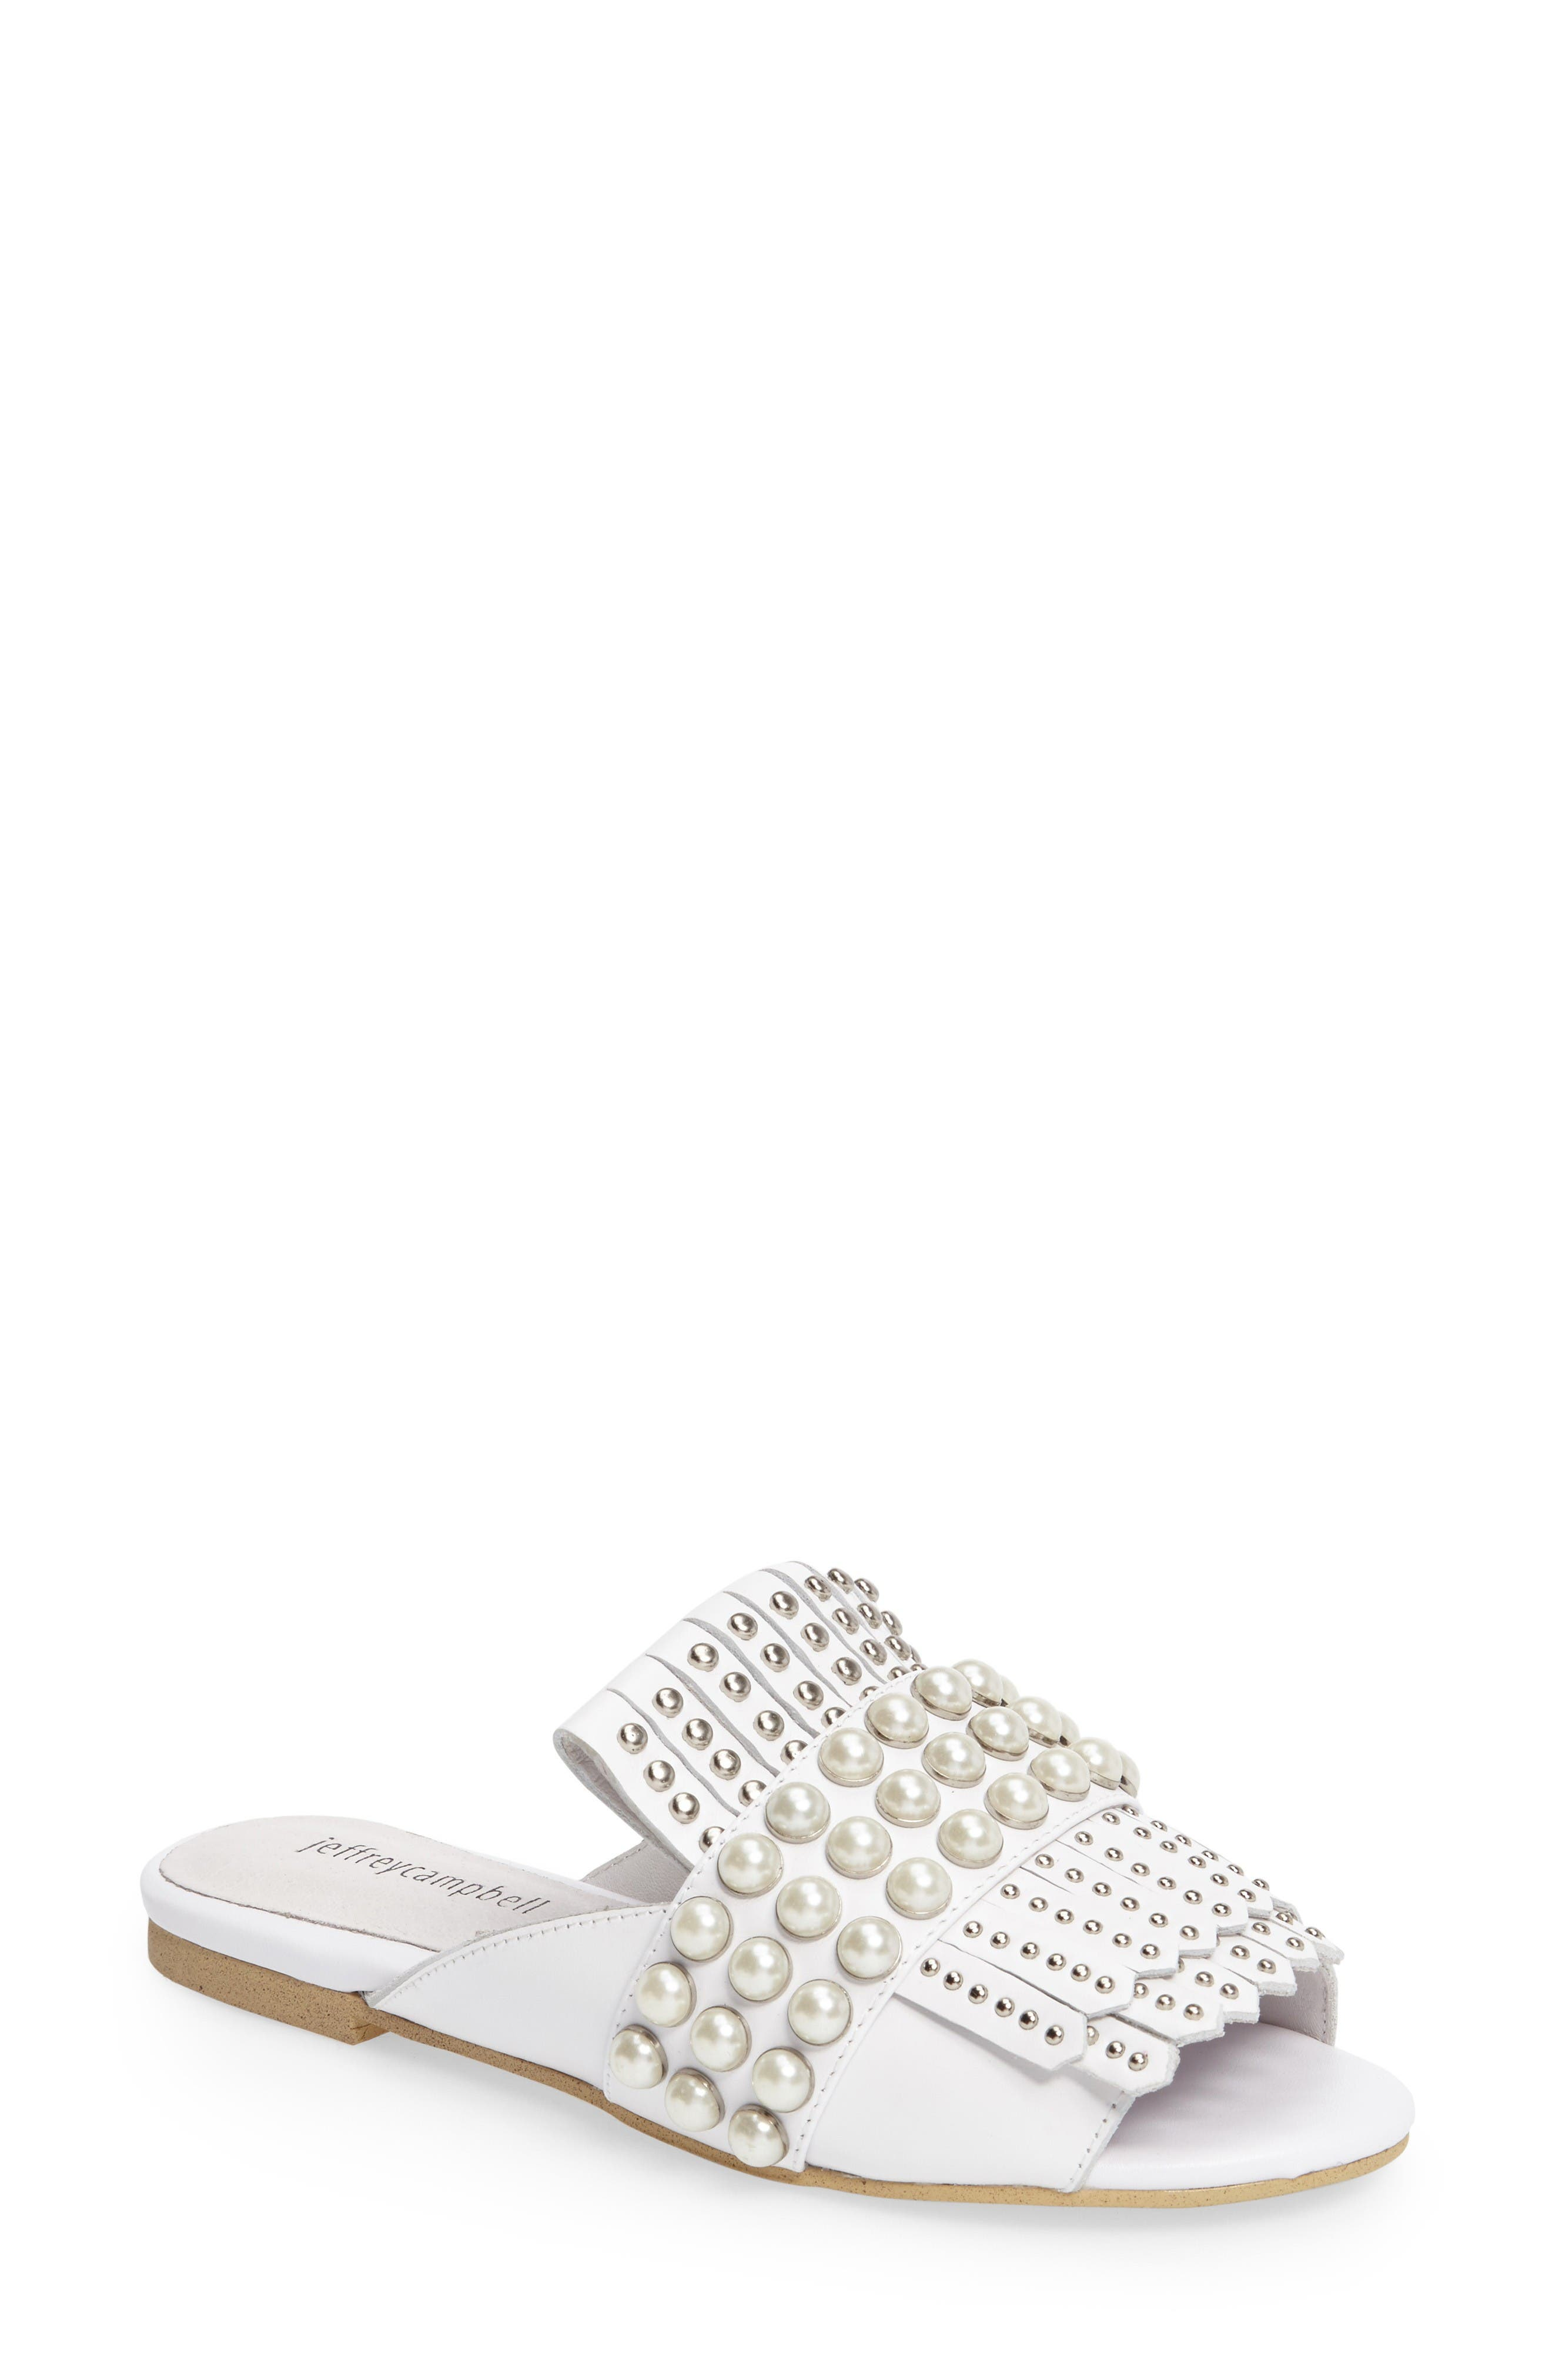 Main Image - Jeffrey Campbell Talley Embellished Loafer Mule (Women)